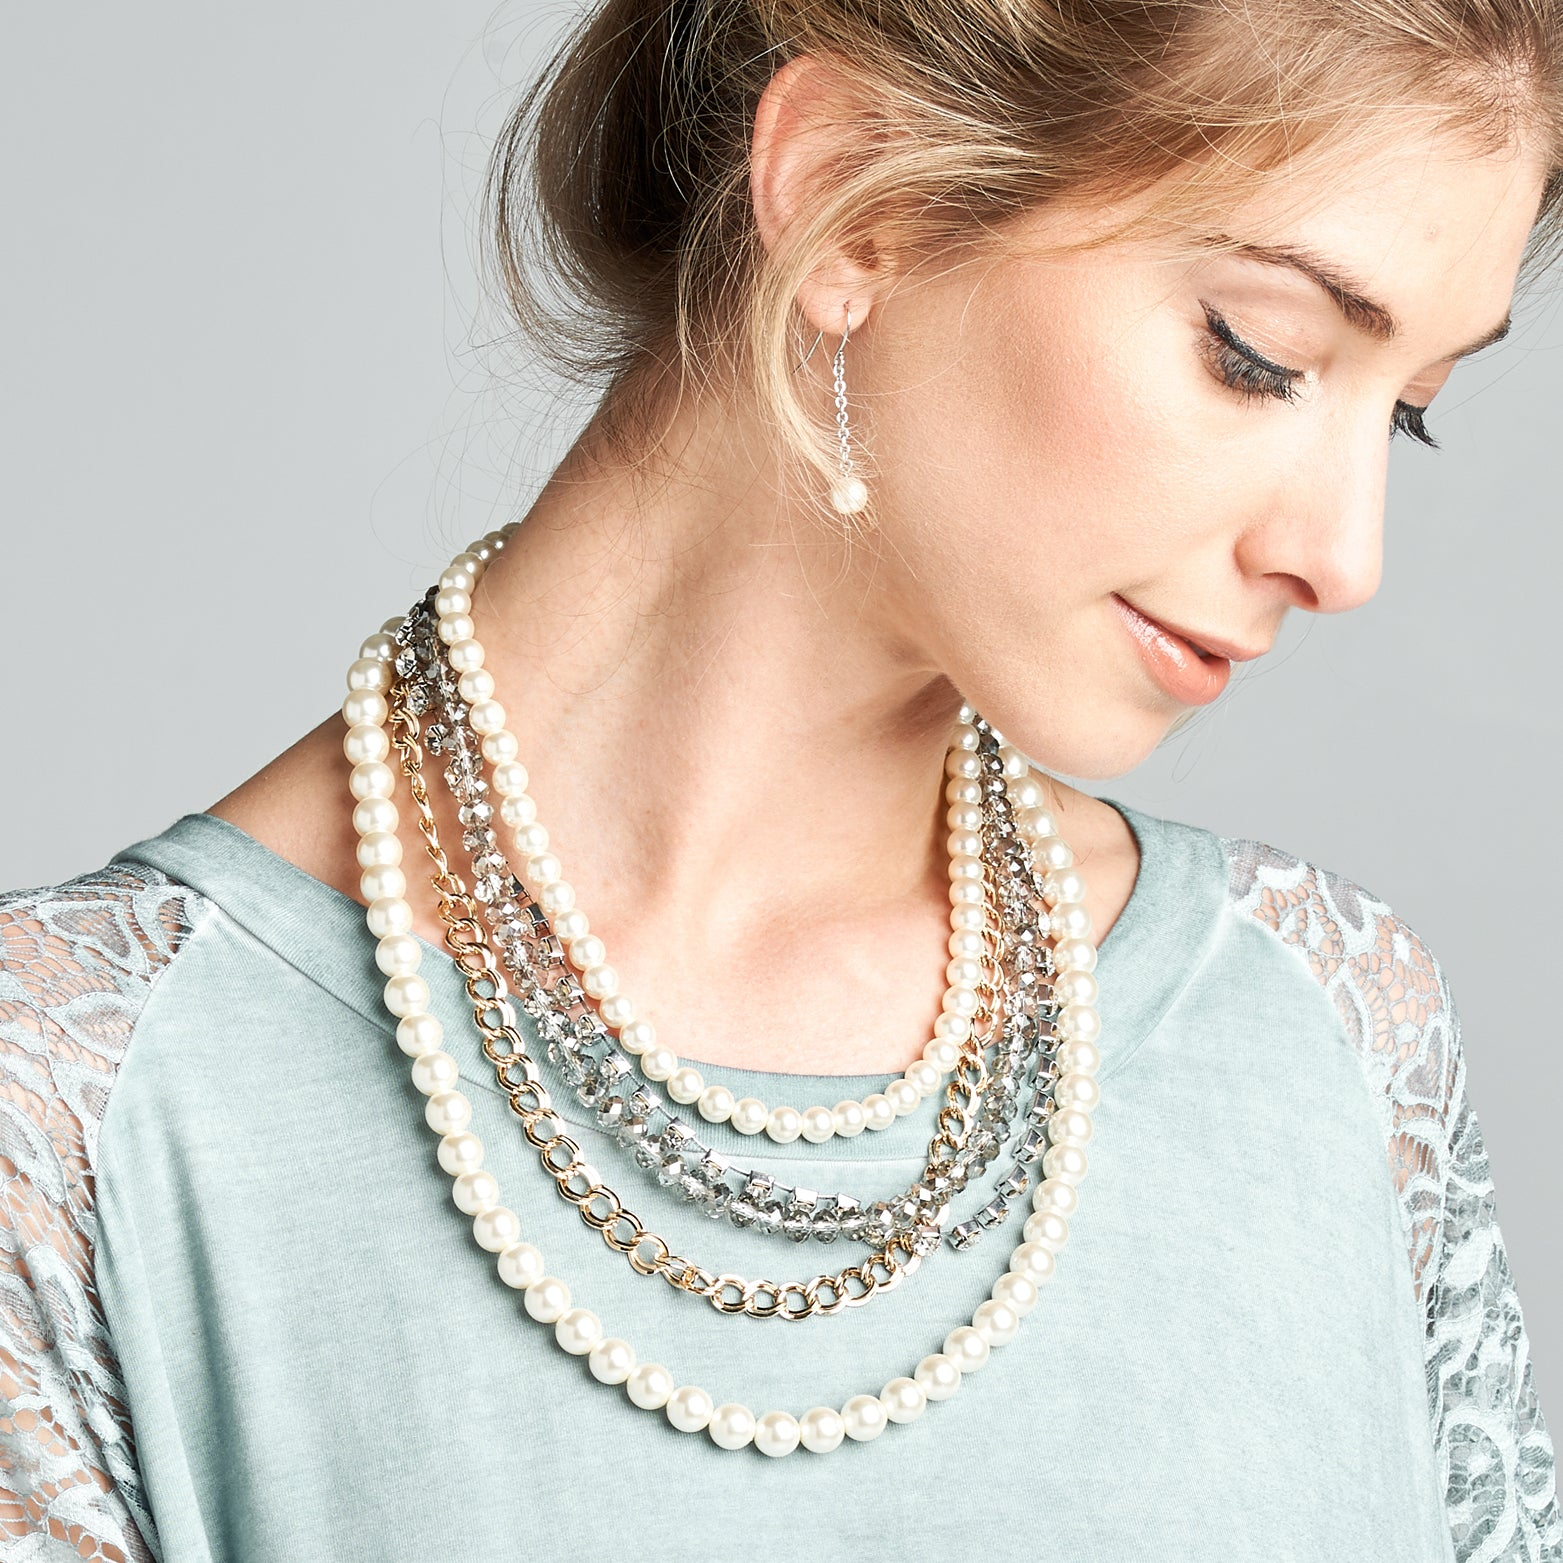 Mixed Layered Necklace - Love, Kuza